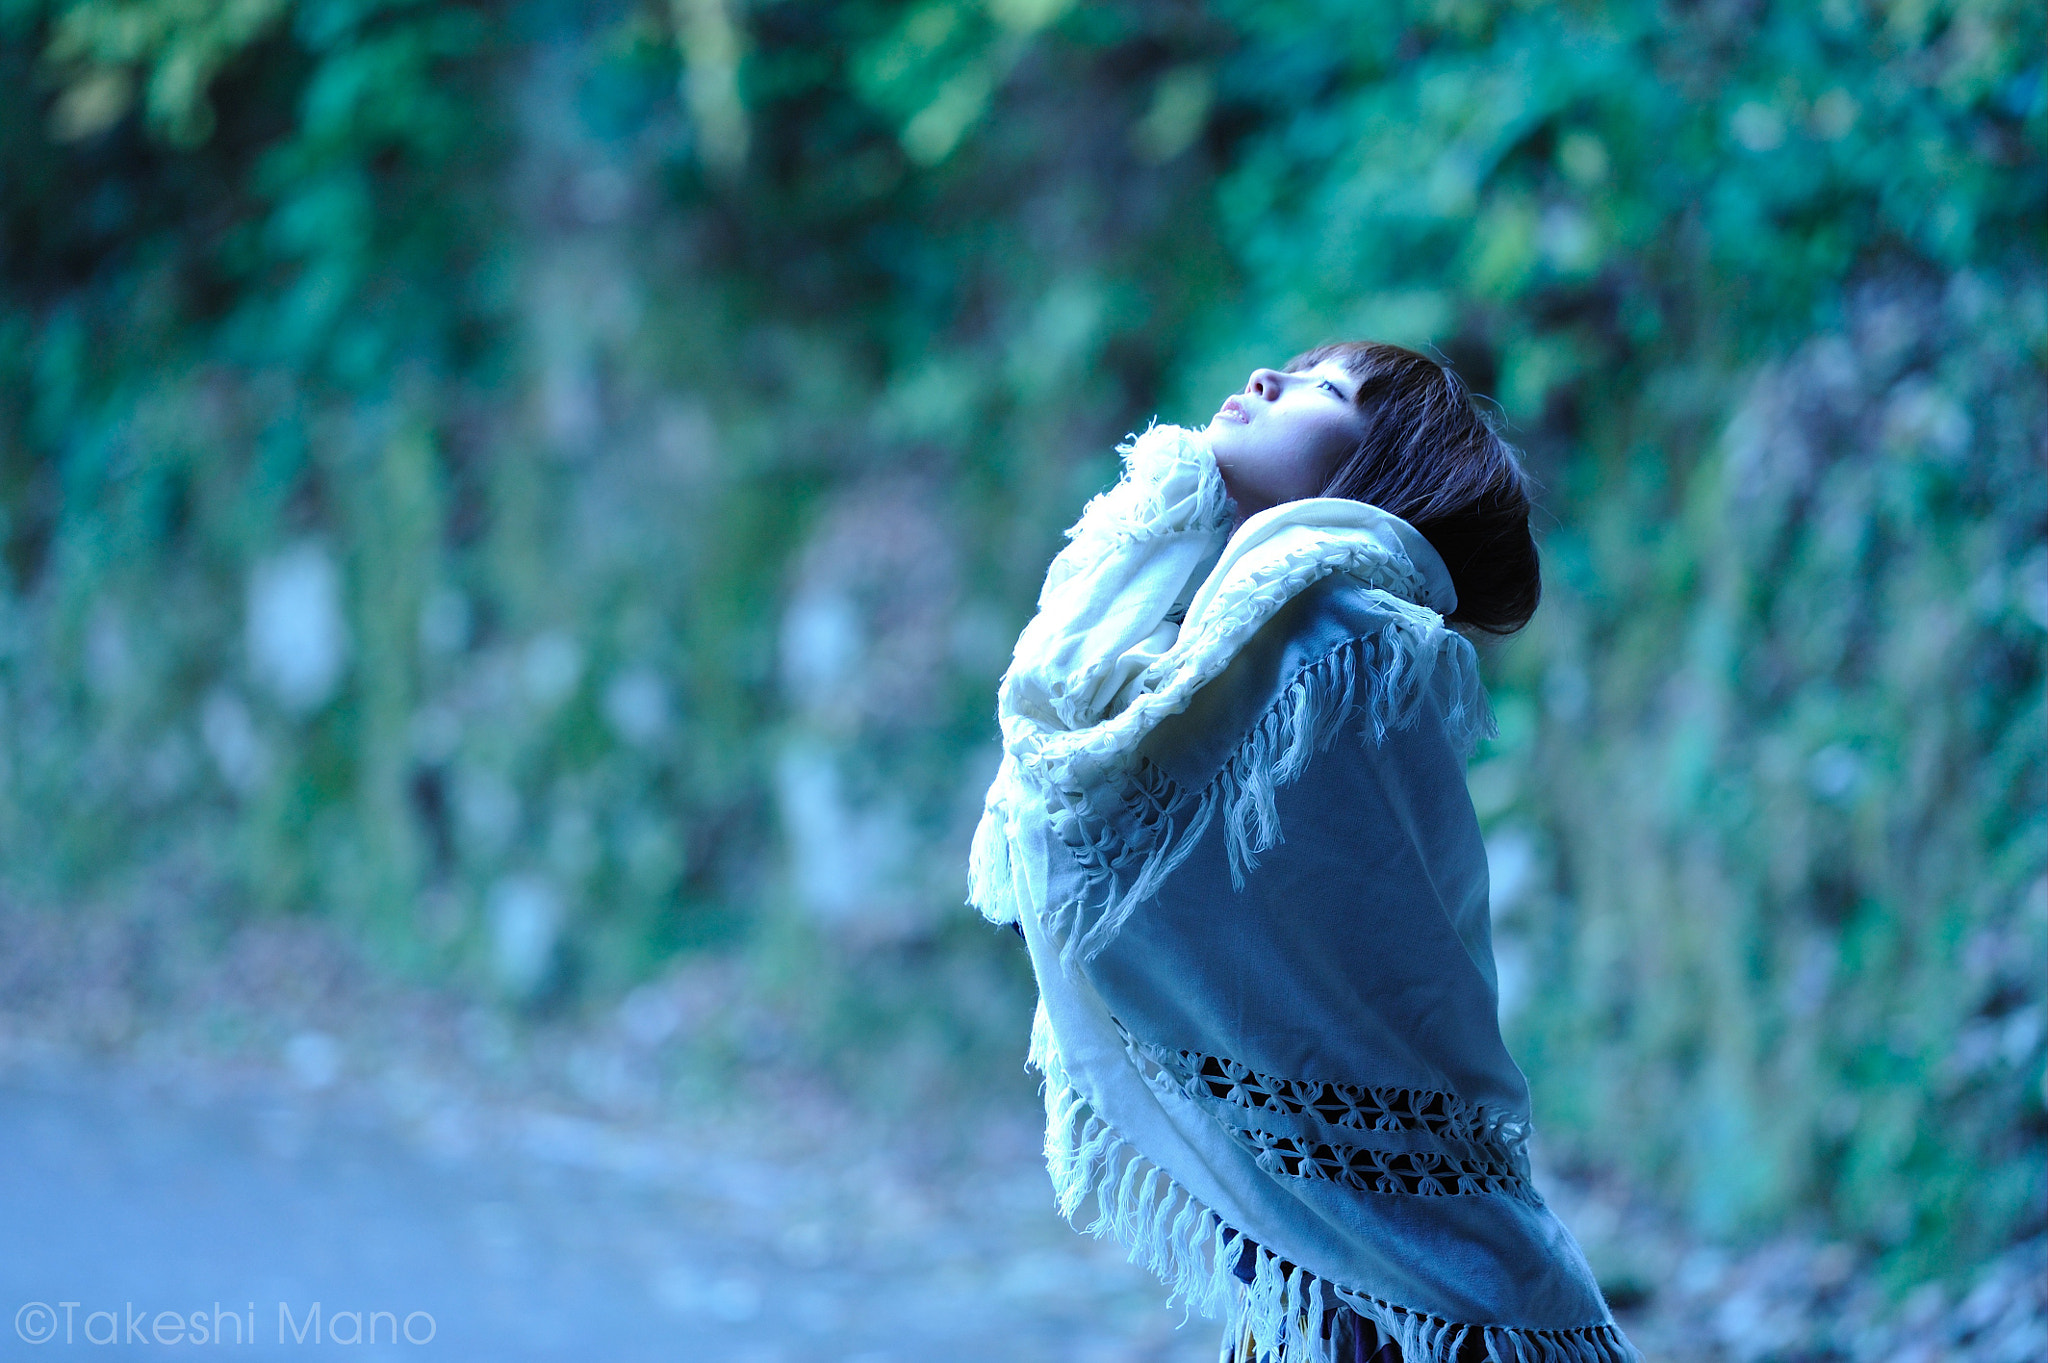 Photograph pray by Takeshi Mano on 500px